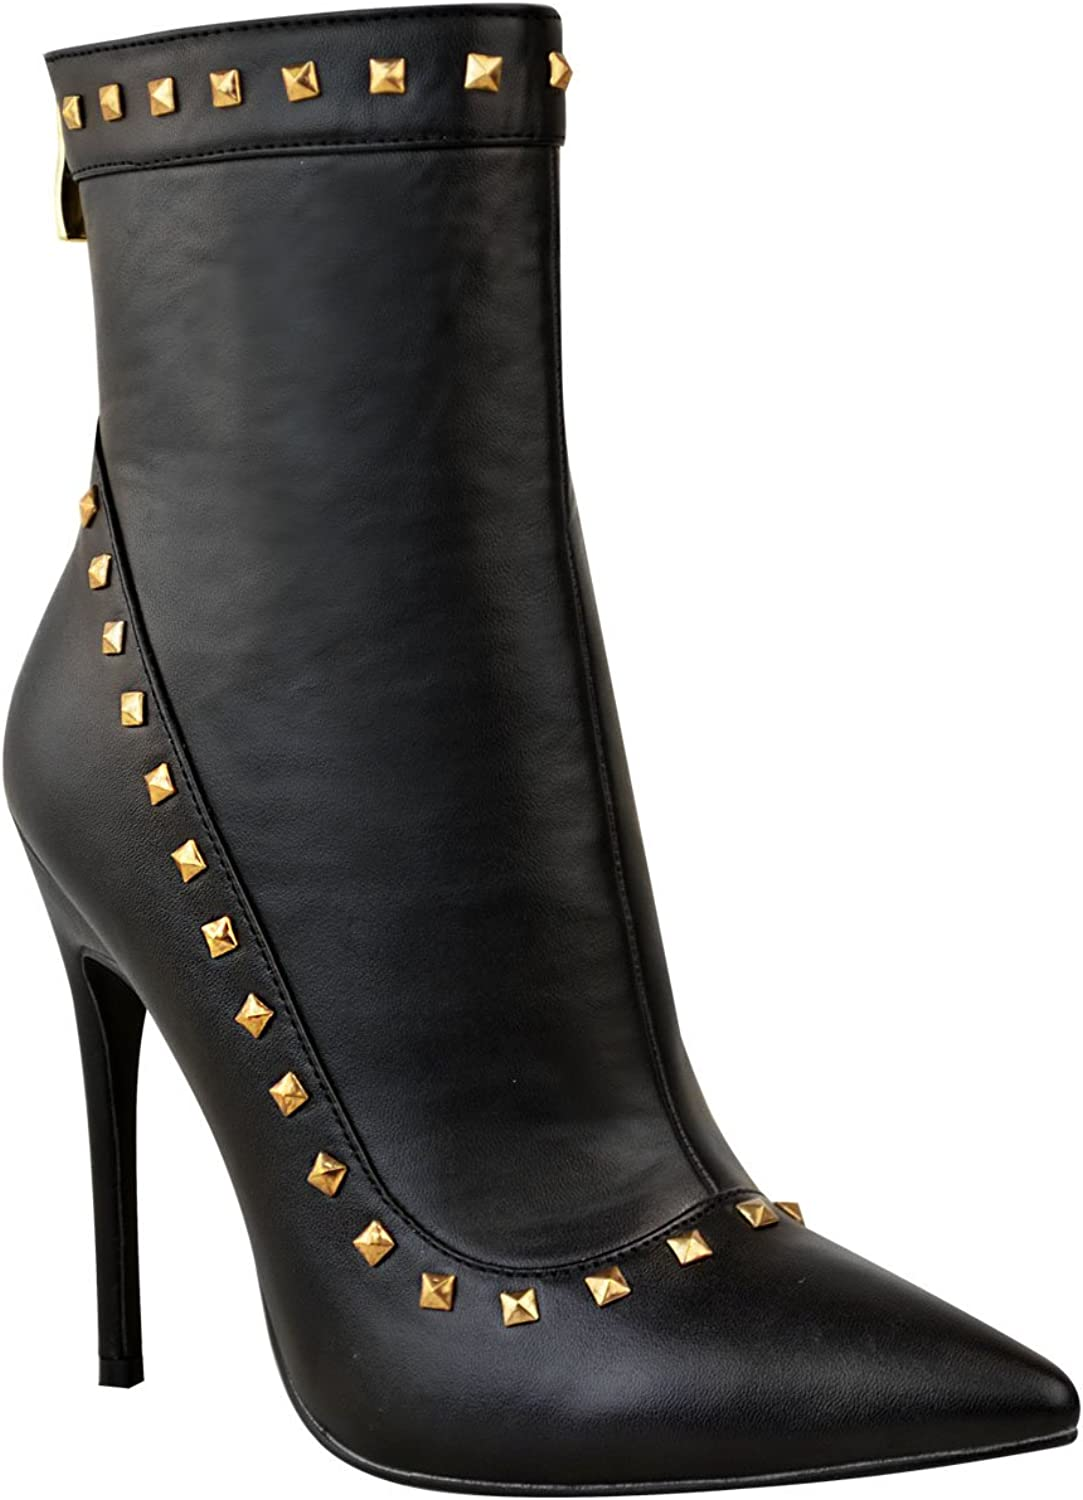 Fashion Thirsty Womens Studded Ankle Boots Black Stiletto High Heels Pointed shoes Size